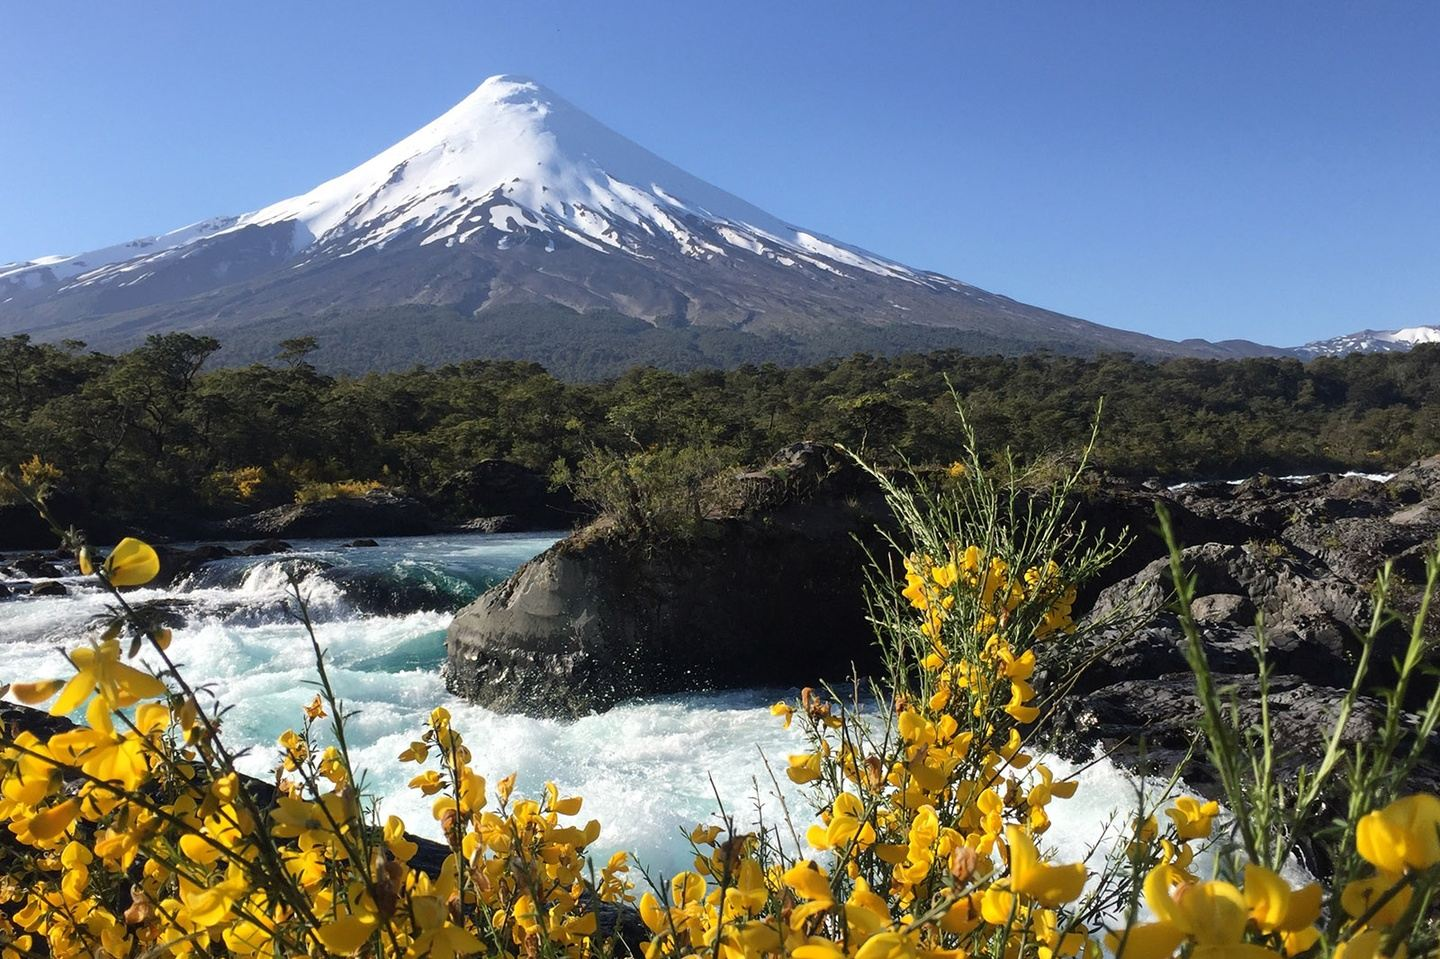 CHILE: Route of the Parks of Patagonia